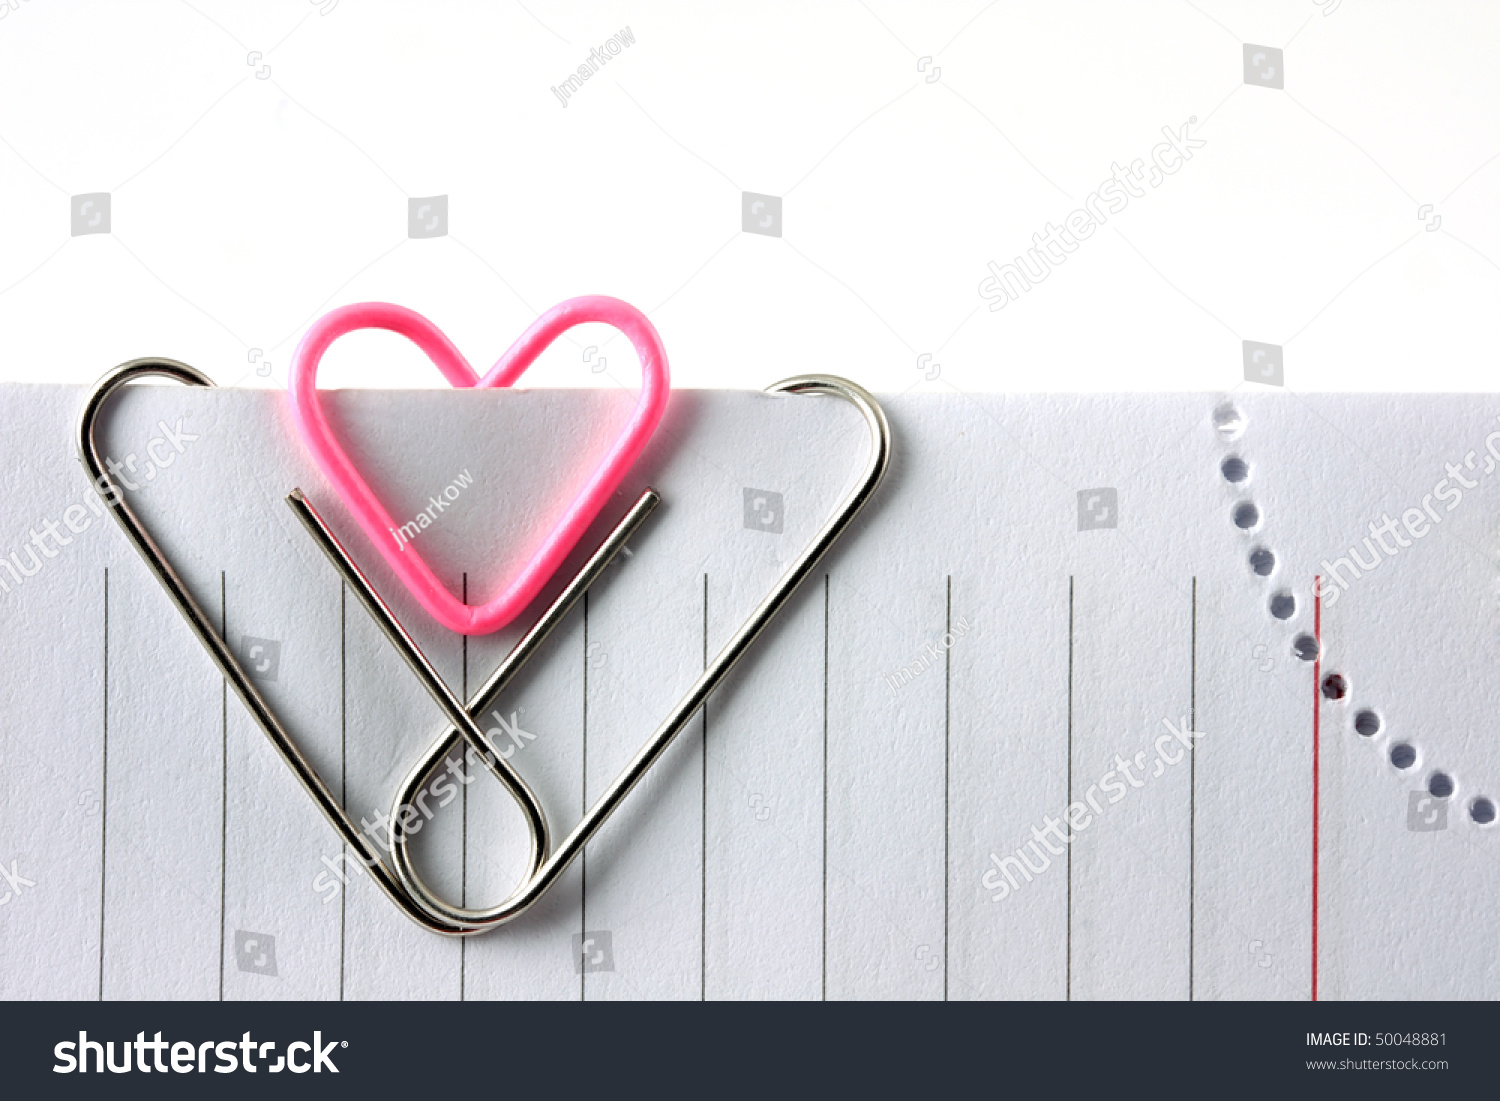 heart shaped paper clips Butler in the home love heart shaped paper clips great for paper clip collectors or office gift - comes in round tin with lid and gift box (100 count red) by butler in the home $1299 $ 12 99 prime free shipping on eligible orders 47 out of 5 stars 5.